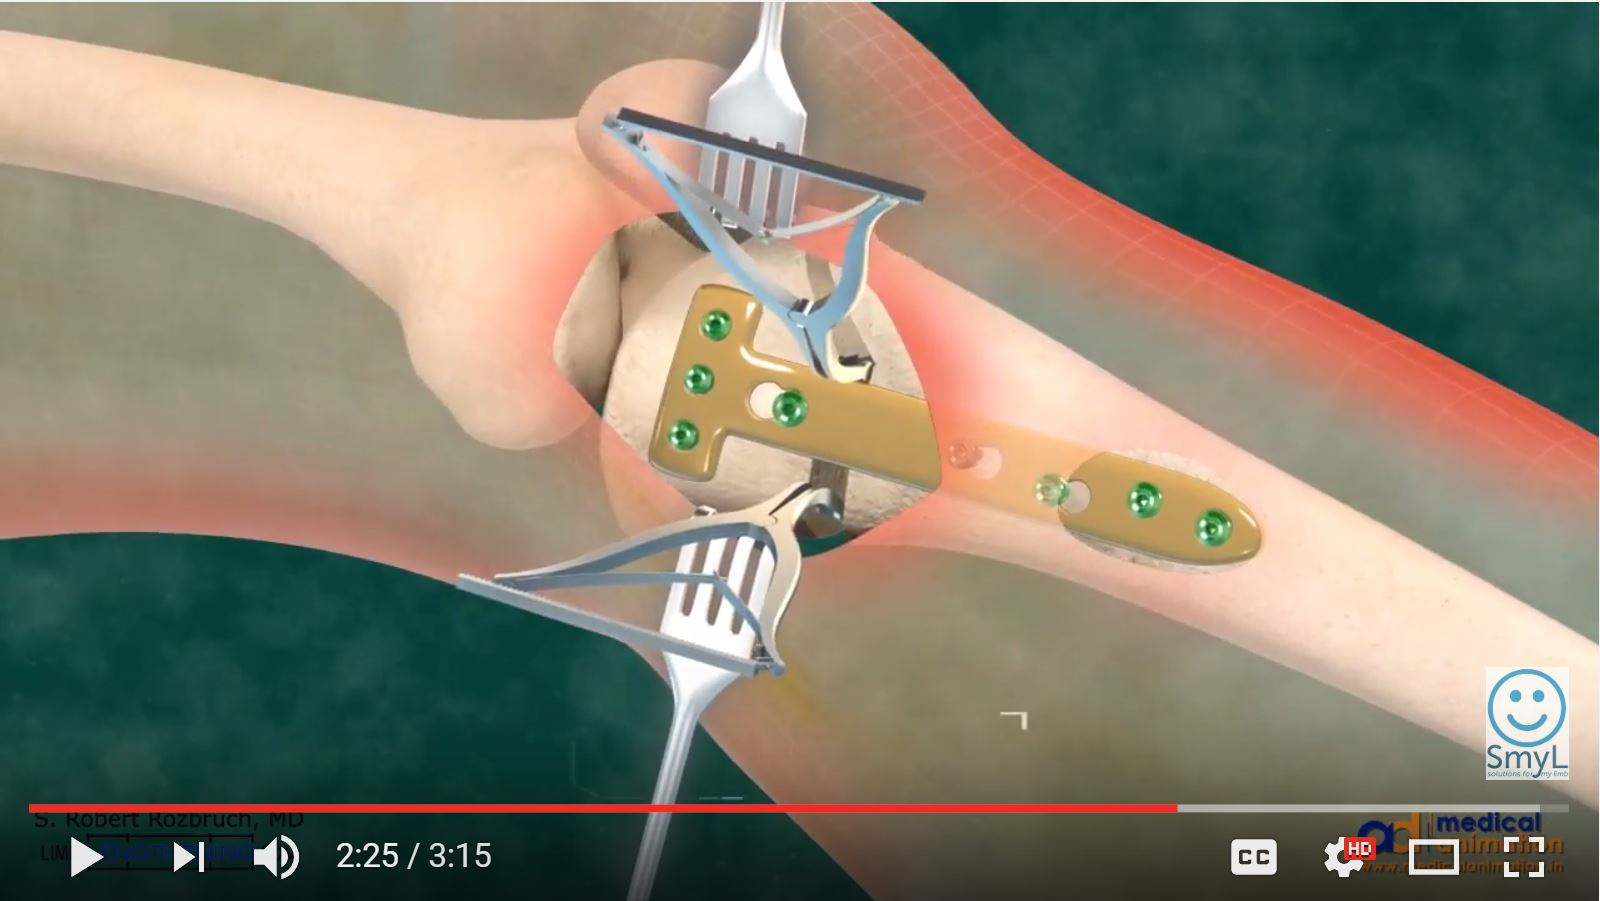 High tibial osteotomy physical therapy - High Tibial Osteotomy For Bow Leg Correction